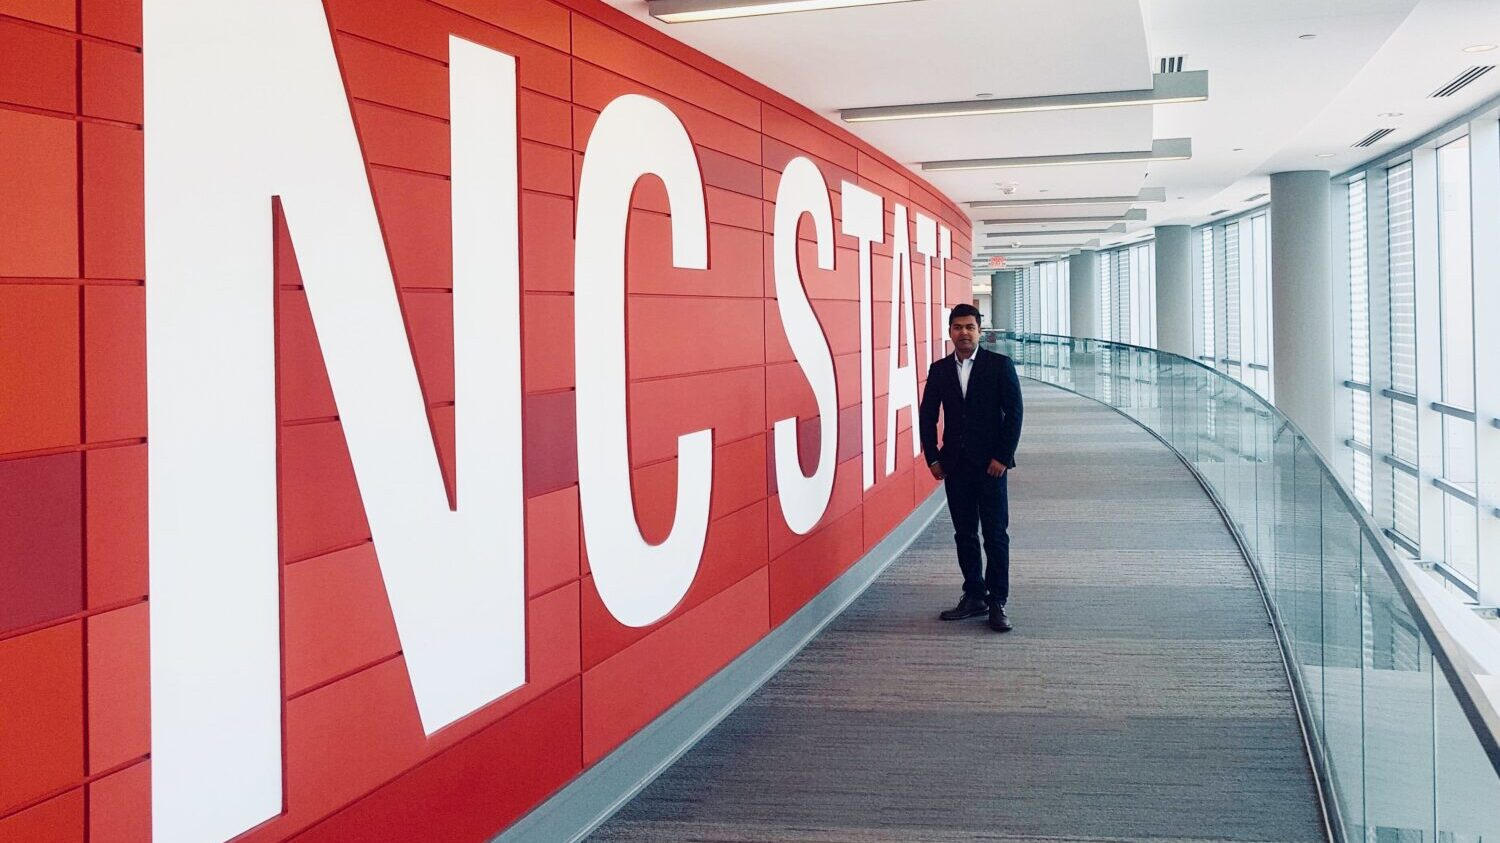 Manik Chandra Biswas standing in front of large NC State sign